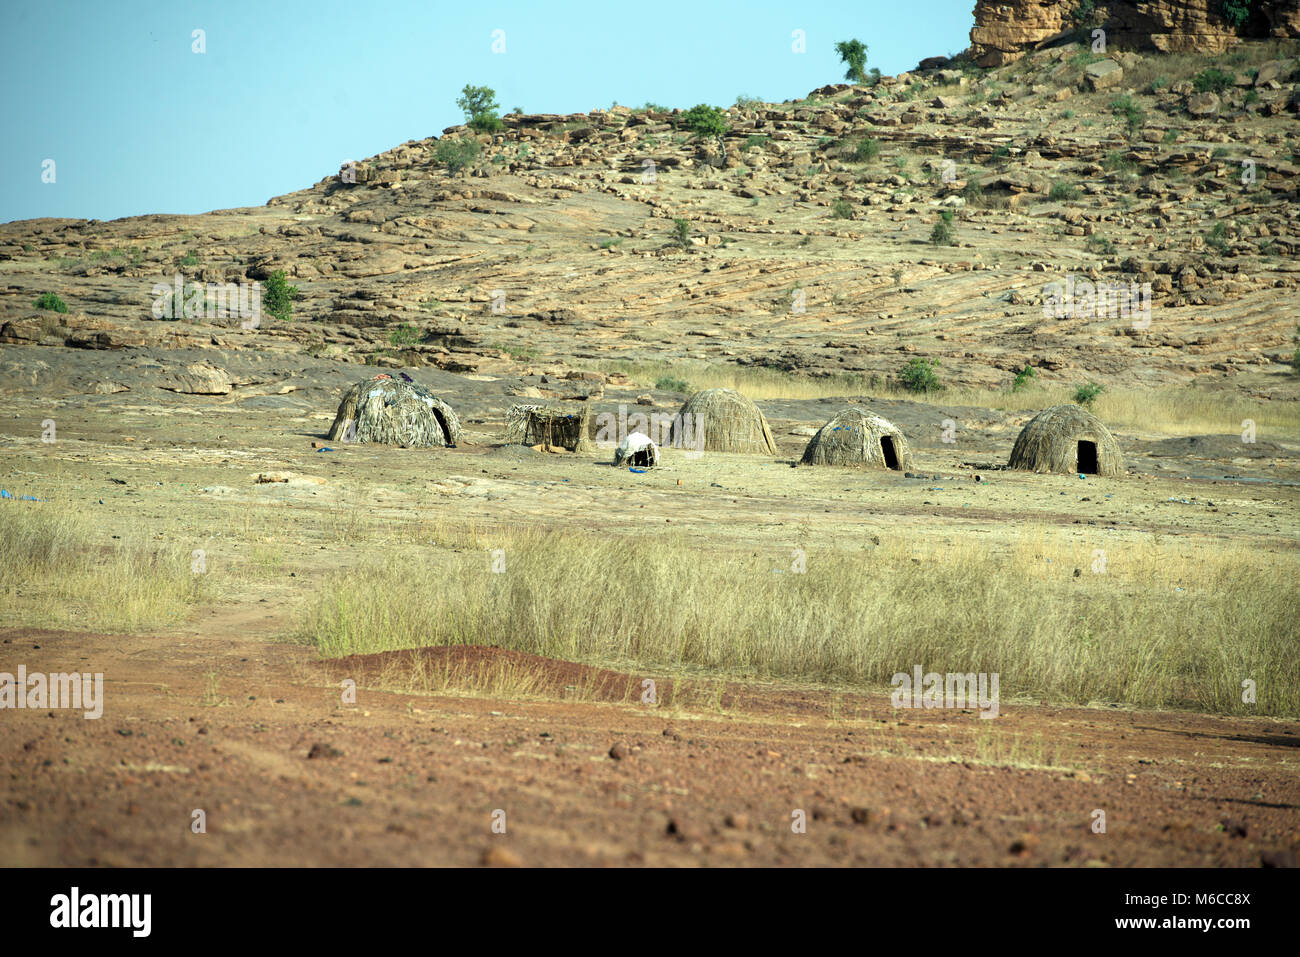 Small straw huts are built to support the nomadic lifestyle of the indigenous Fulani tribe. Mali, West Africa. - Stock Image